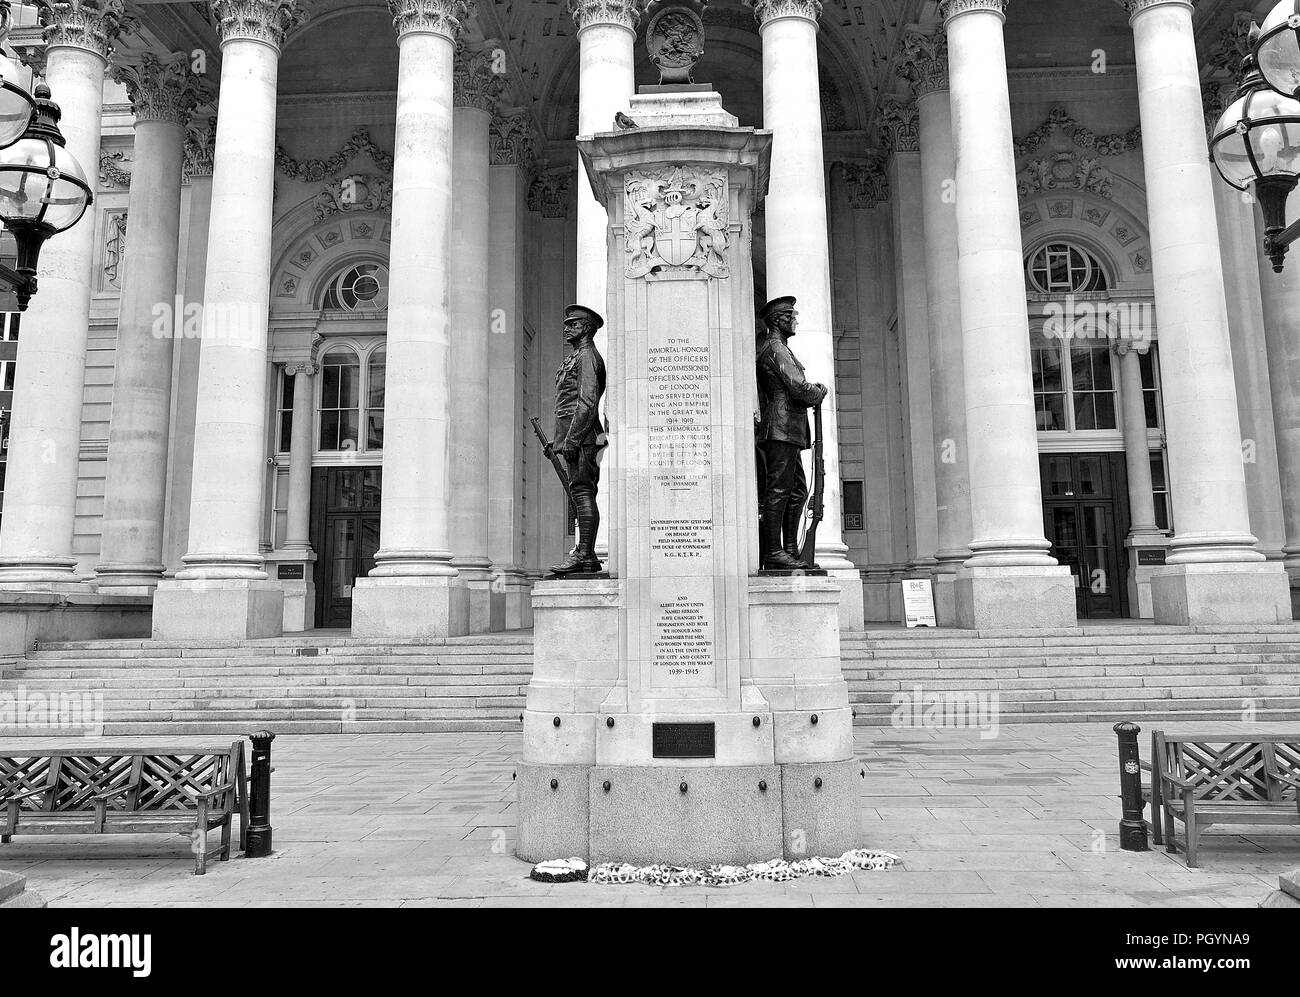 the Royal Exchange in City of London, England.  Black and white photo. - Stock Image